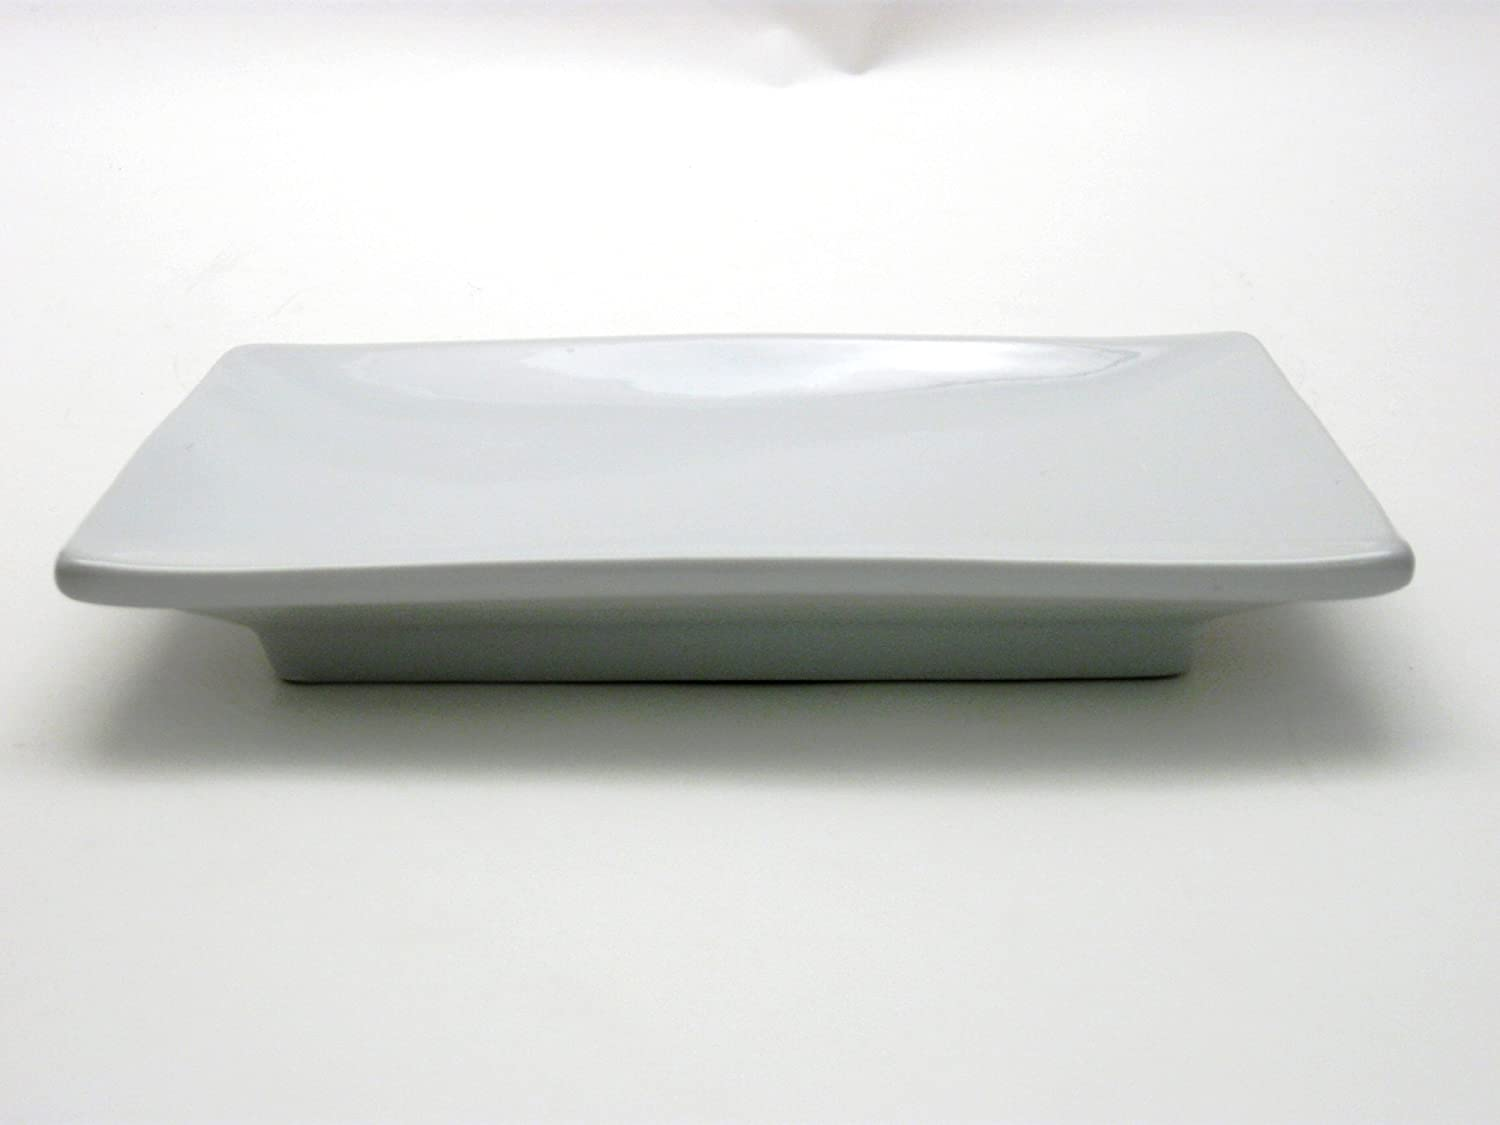 Honey-Can-Do 8070 Porcelain Sushi Plate, White, 8-Inches x 5.5-Inches